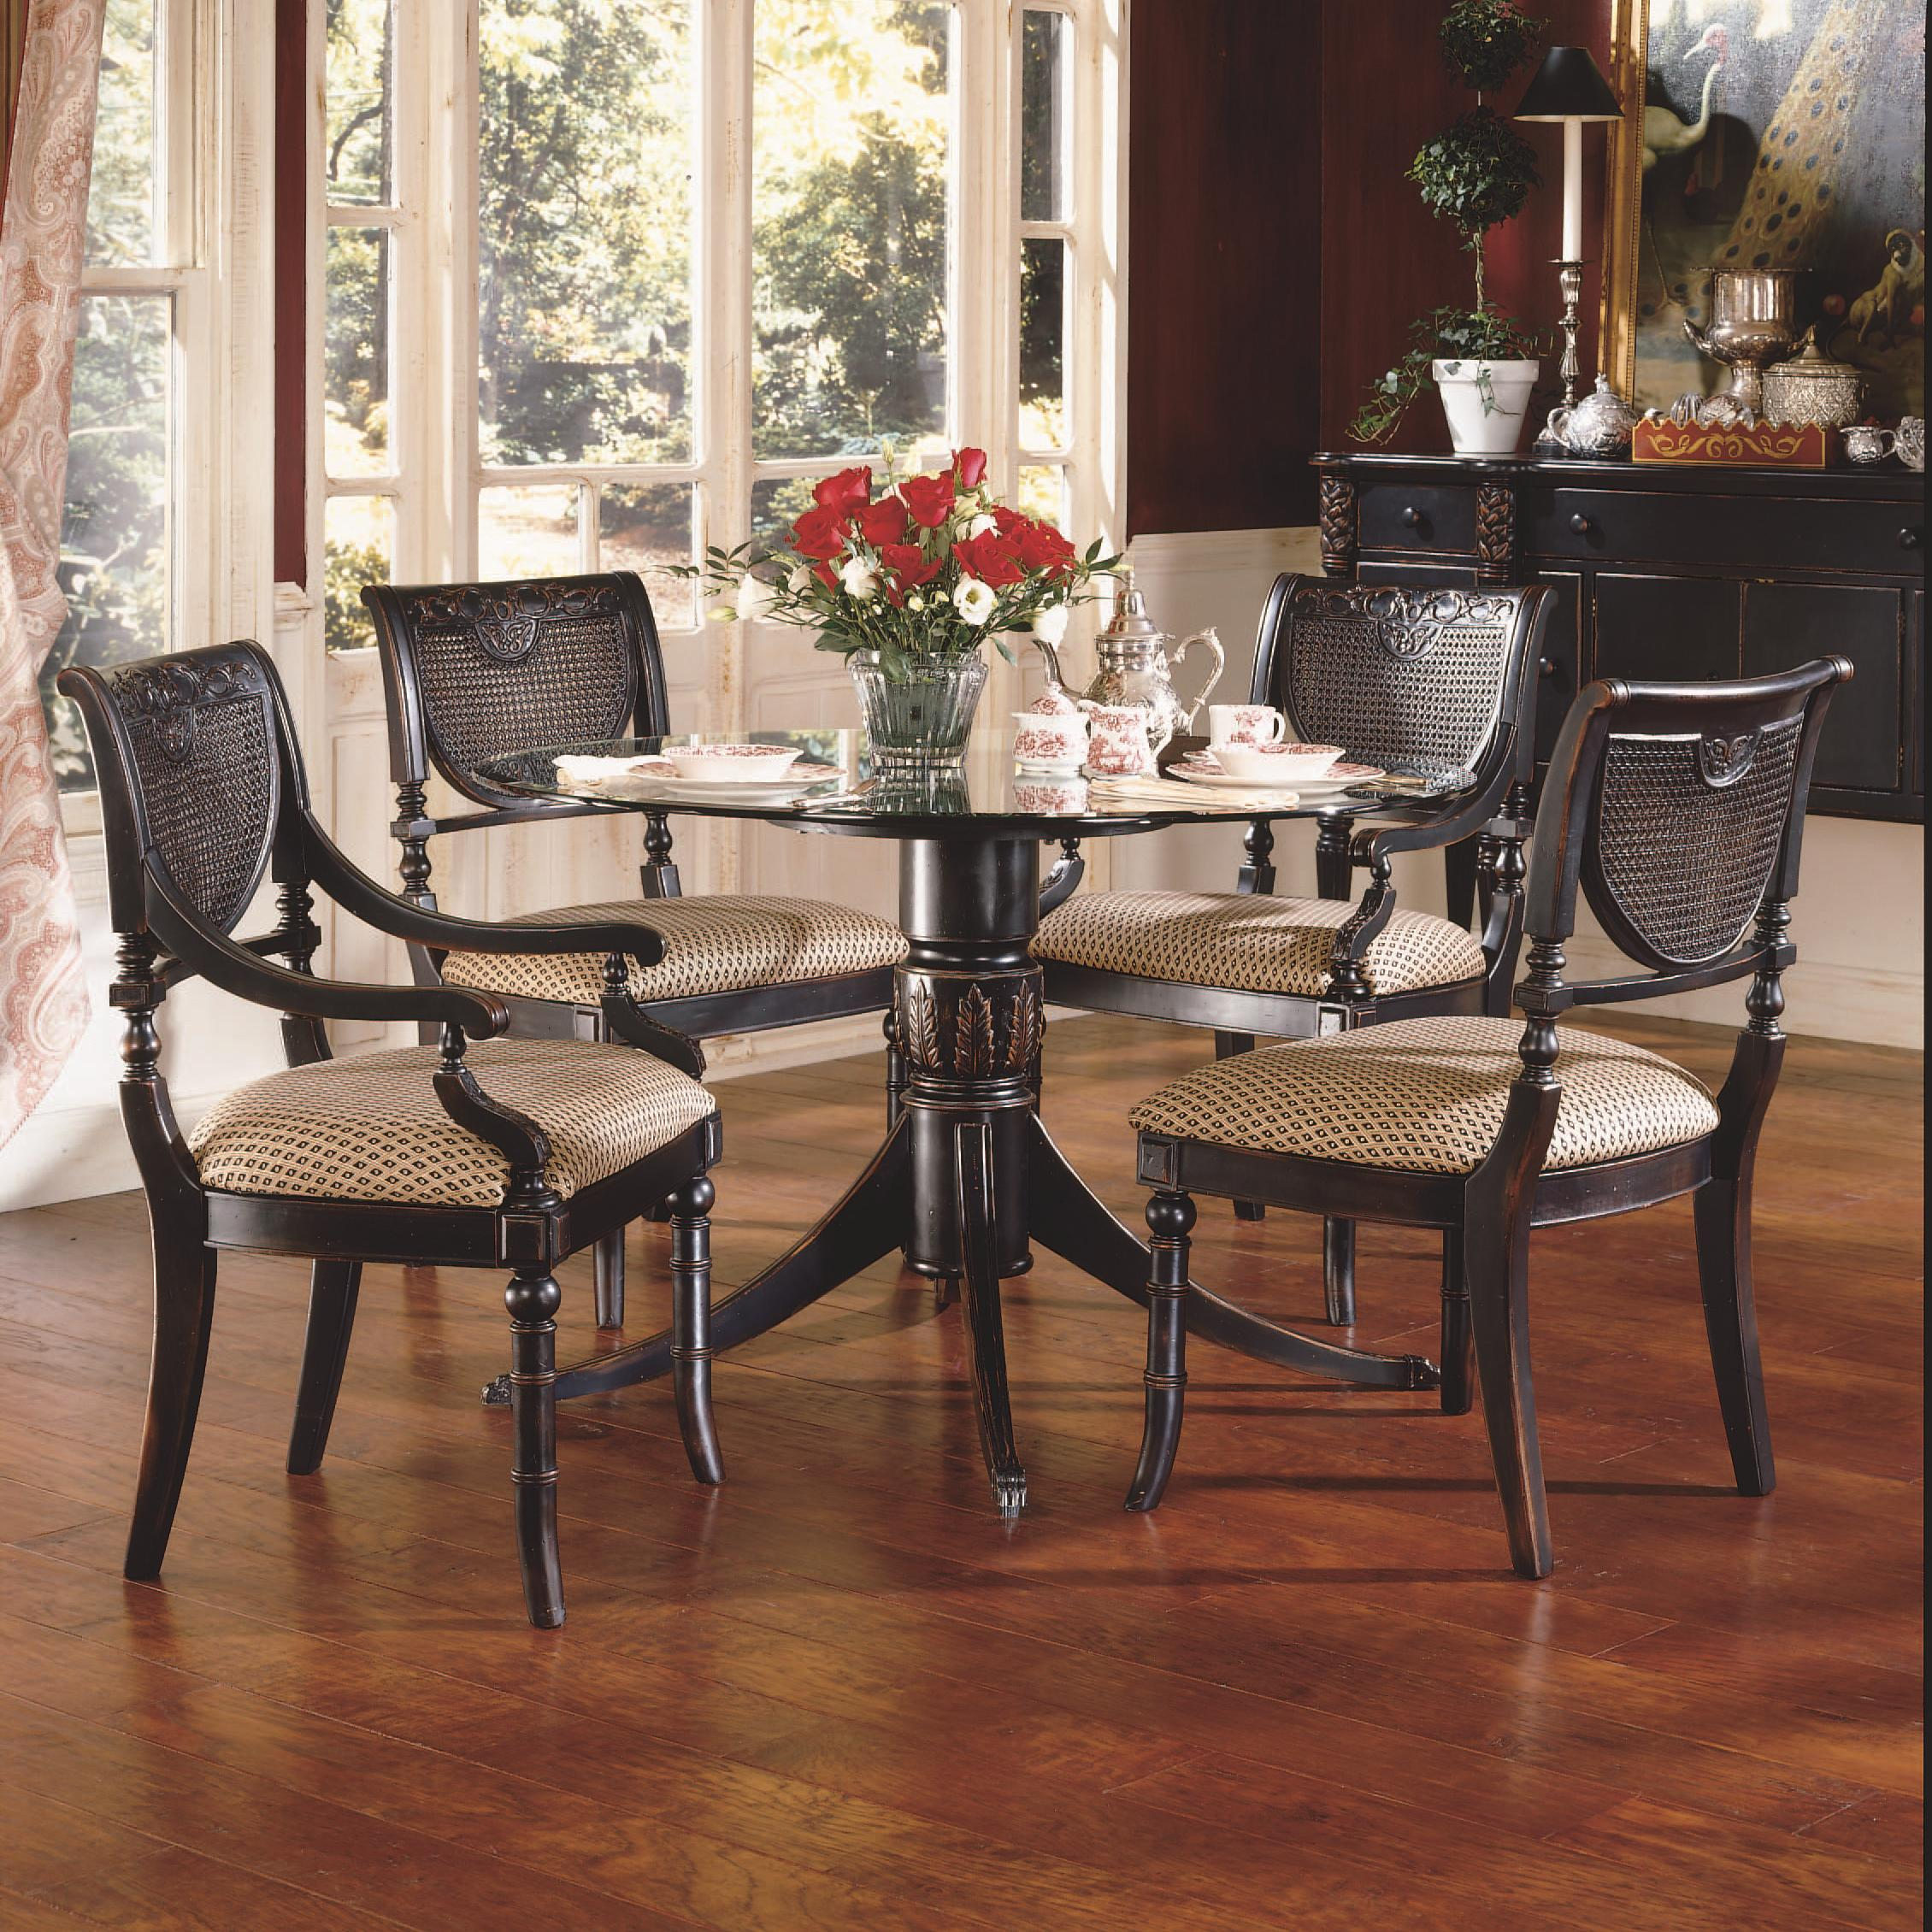 Largo Heritage Five Piece Round Dining Table And Chair Set   Lindyu0027s  Furniture Company   Dining 5 Piece Set